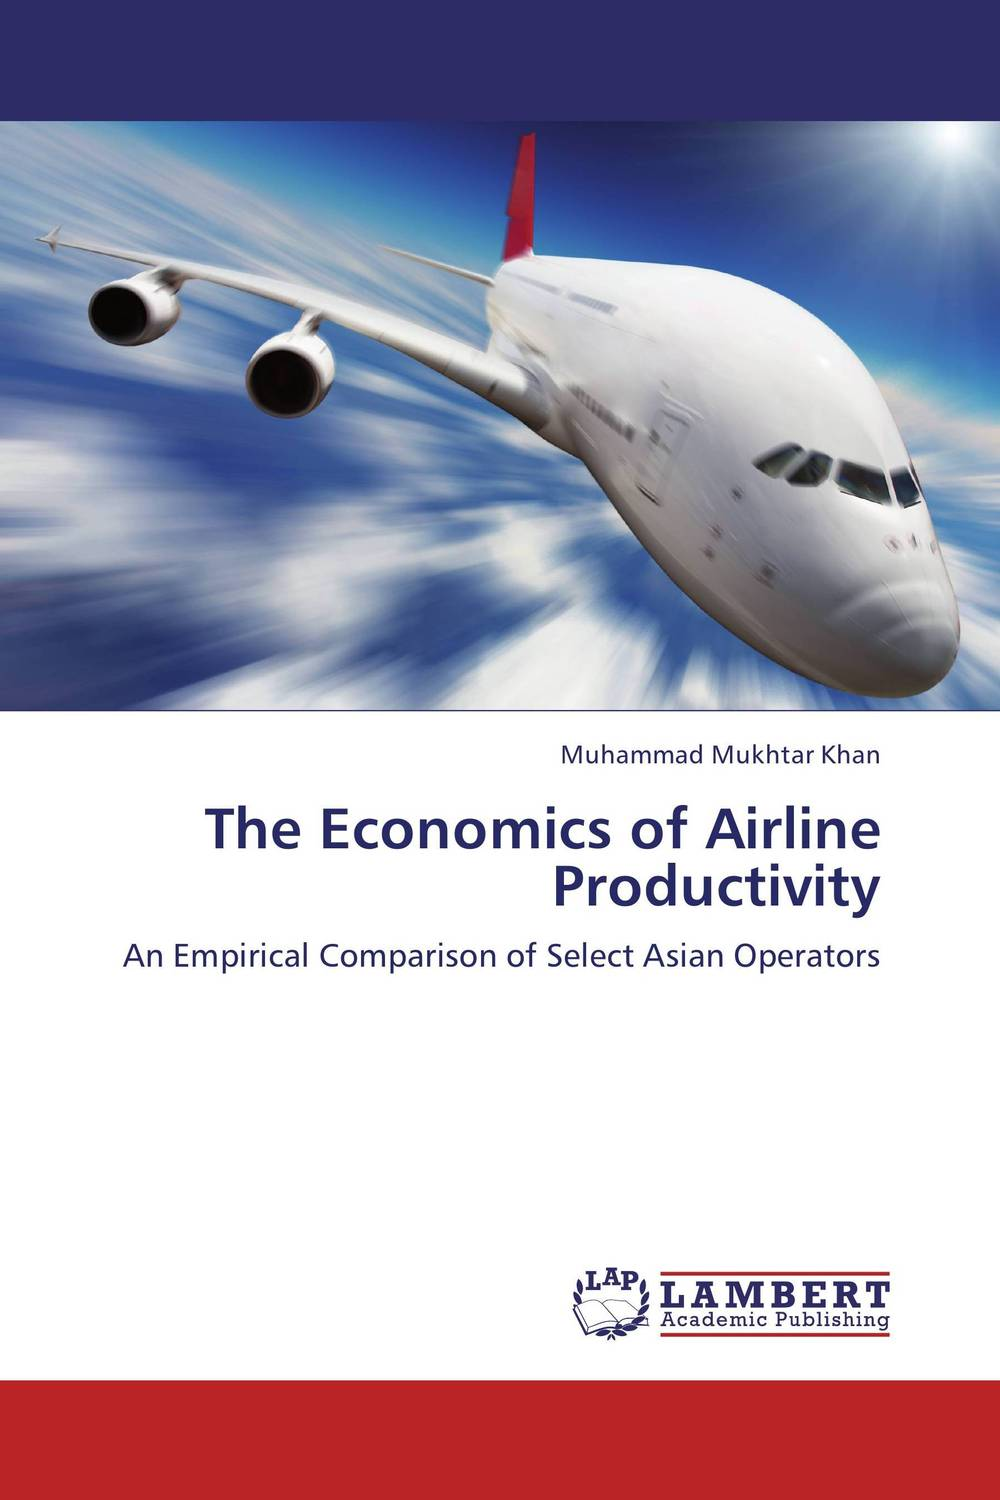 The Economics of Airline Productivity